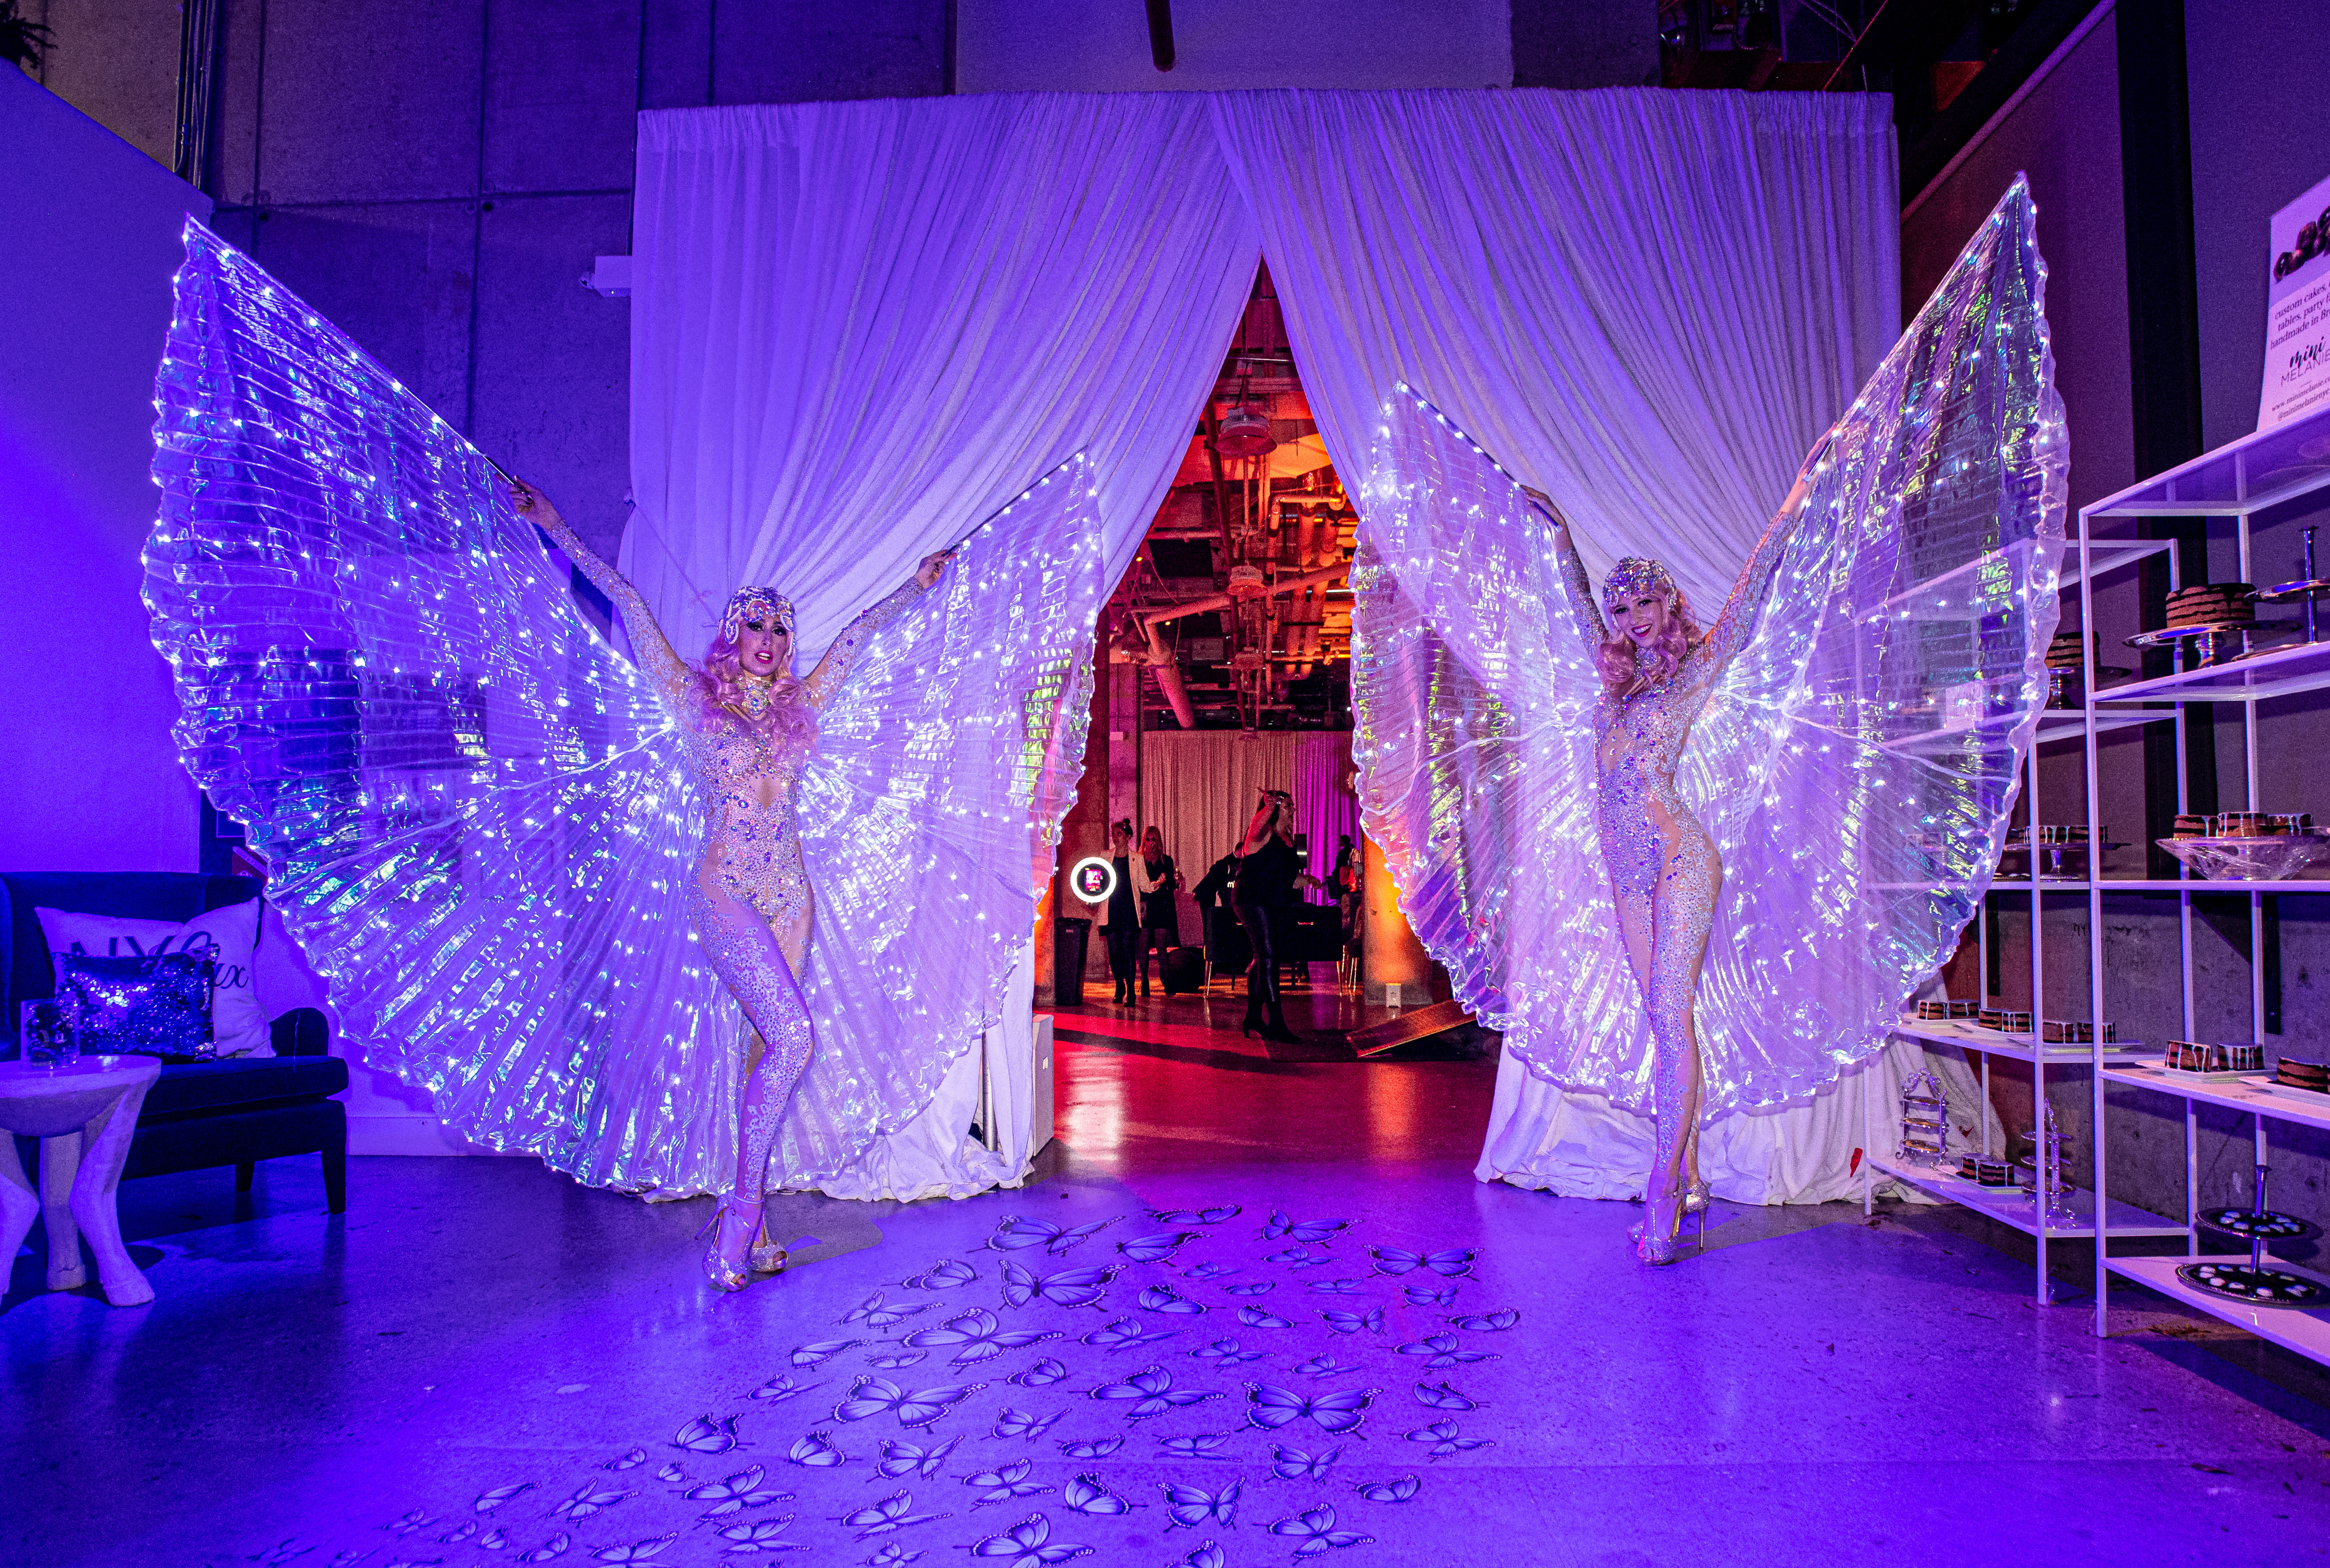 Drape Kings provides top-notch draperies to transform spaces. For this event, the venue used Alpine White Supervel to create a fantasy forest theme for a Halloween party.